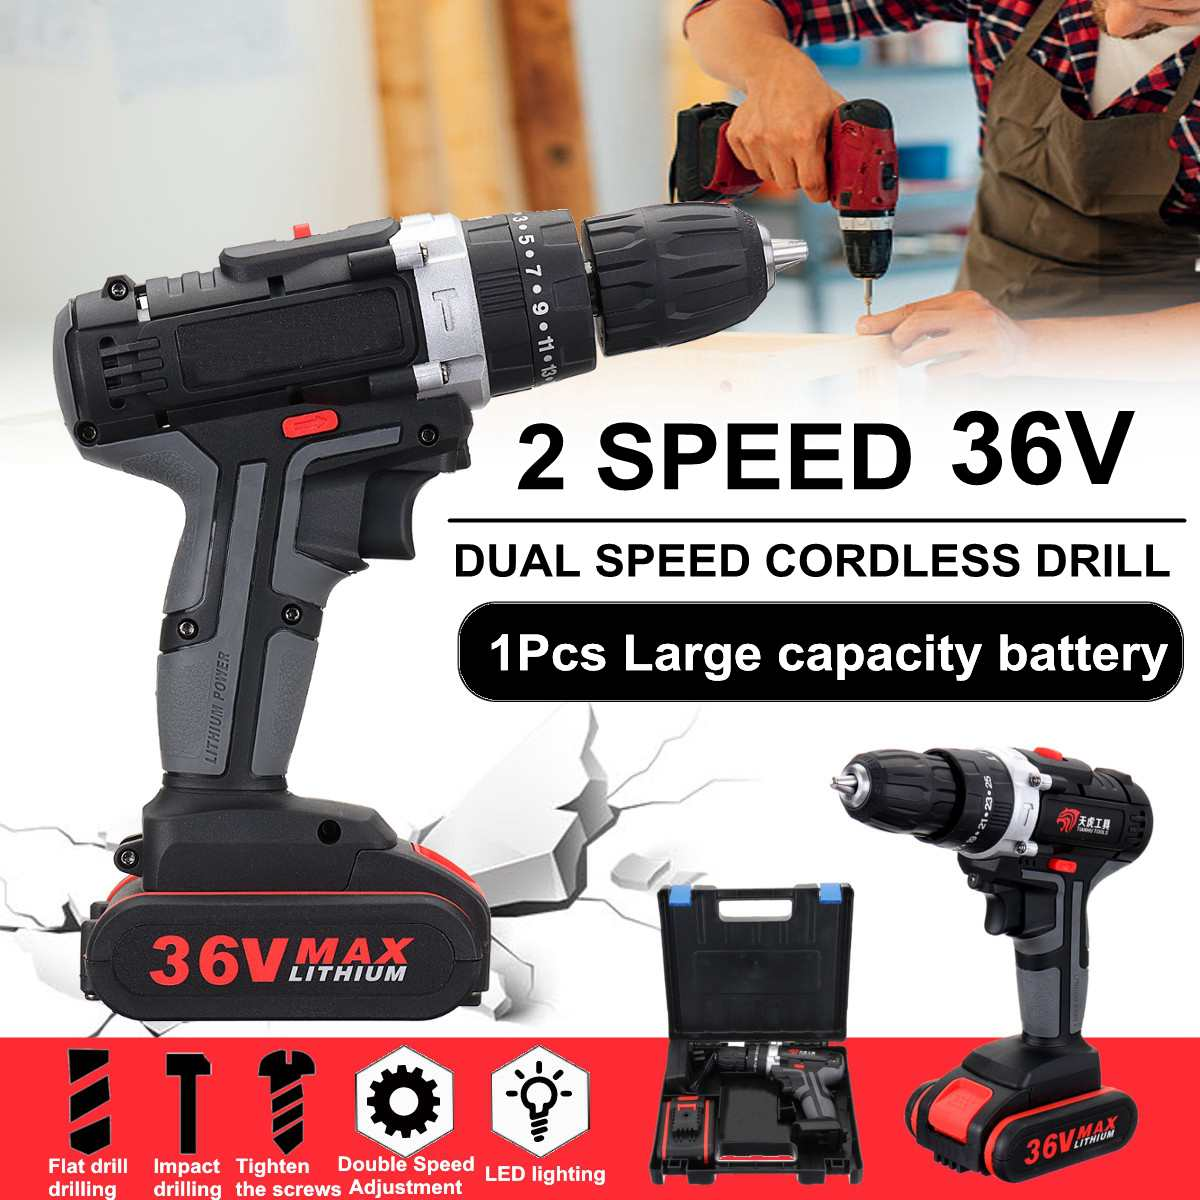 36V Electric Cordless Drill Double Speed Adjustment LED Worklight Electric Drill Set Screwdriver Wood Drilling Power Tools|Electric Drills| |  -